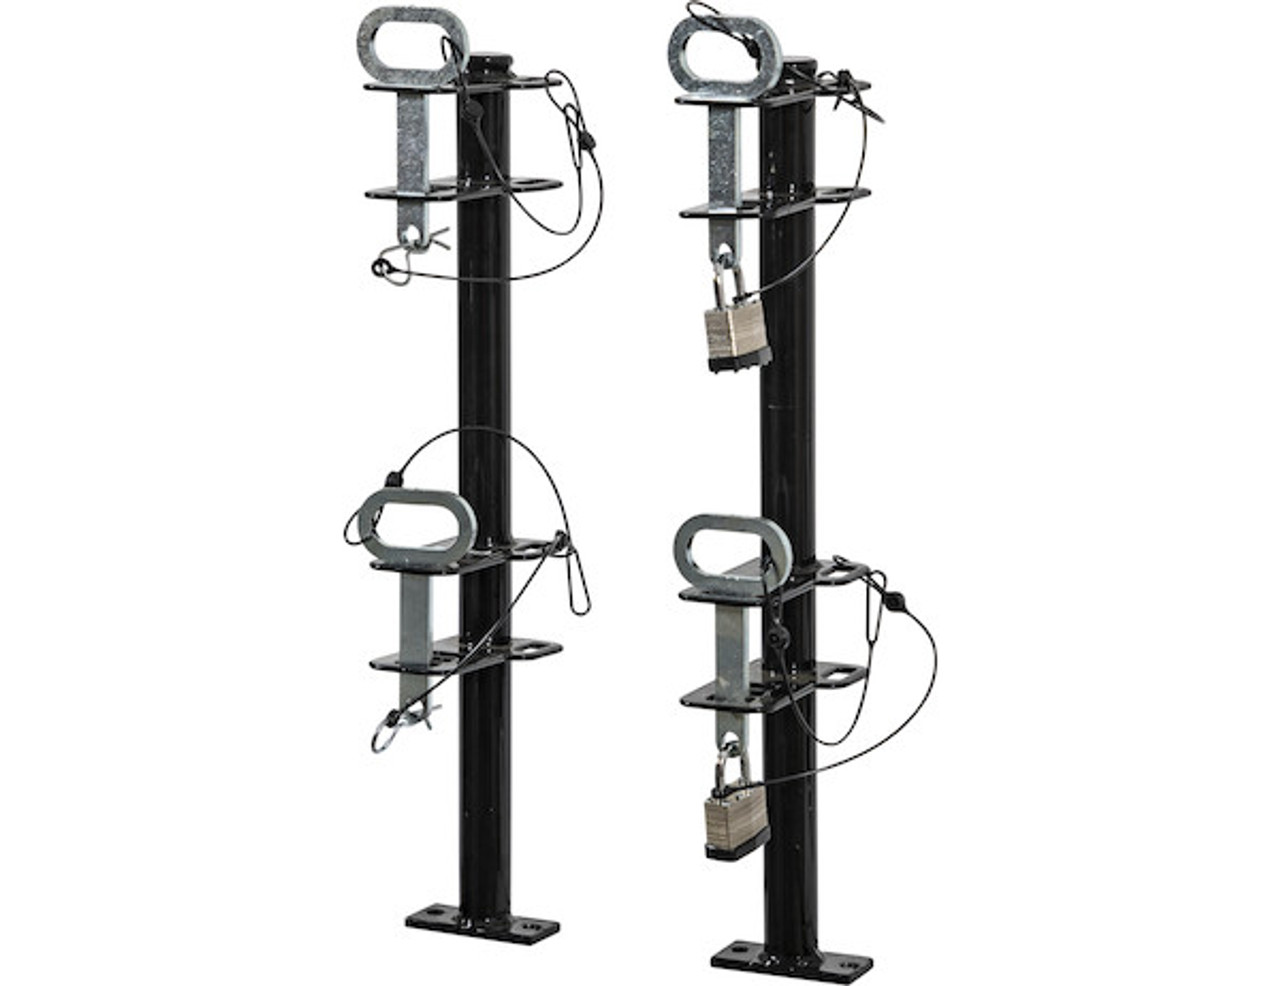 Buyers LT18 Lockable Trimmer Rack Carrier Holder for Up to 2 Trimmers for Trailers and Trucks Picture # 5